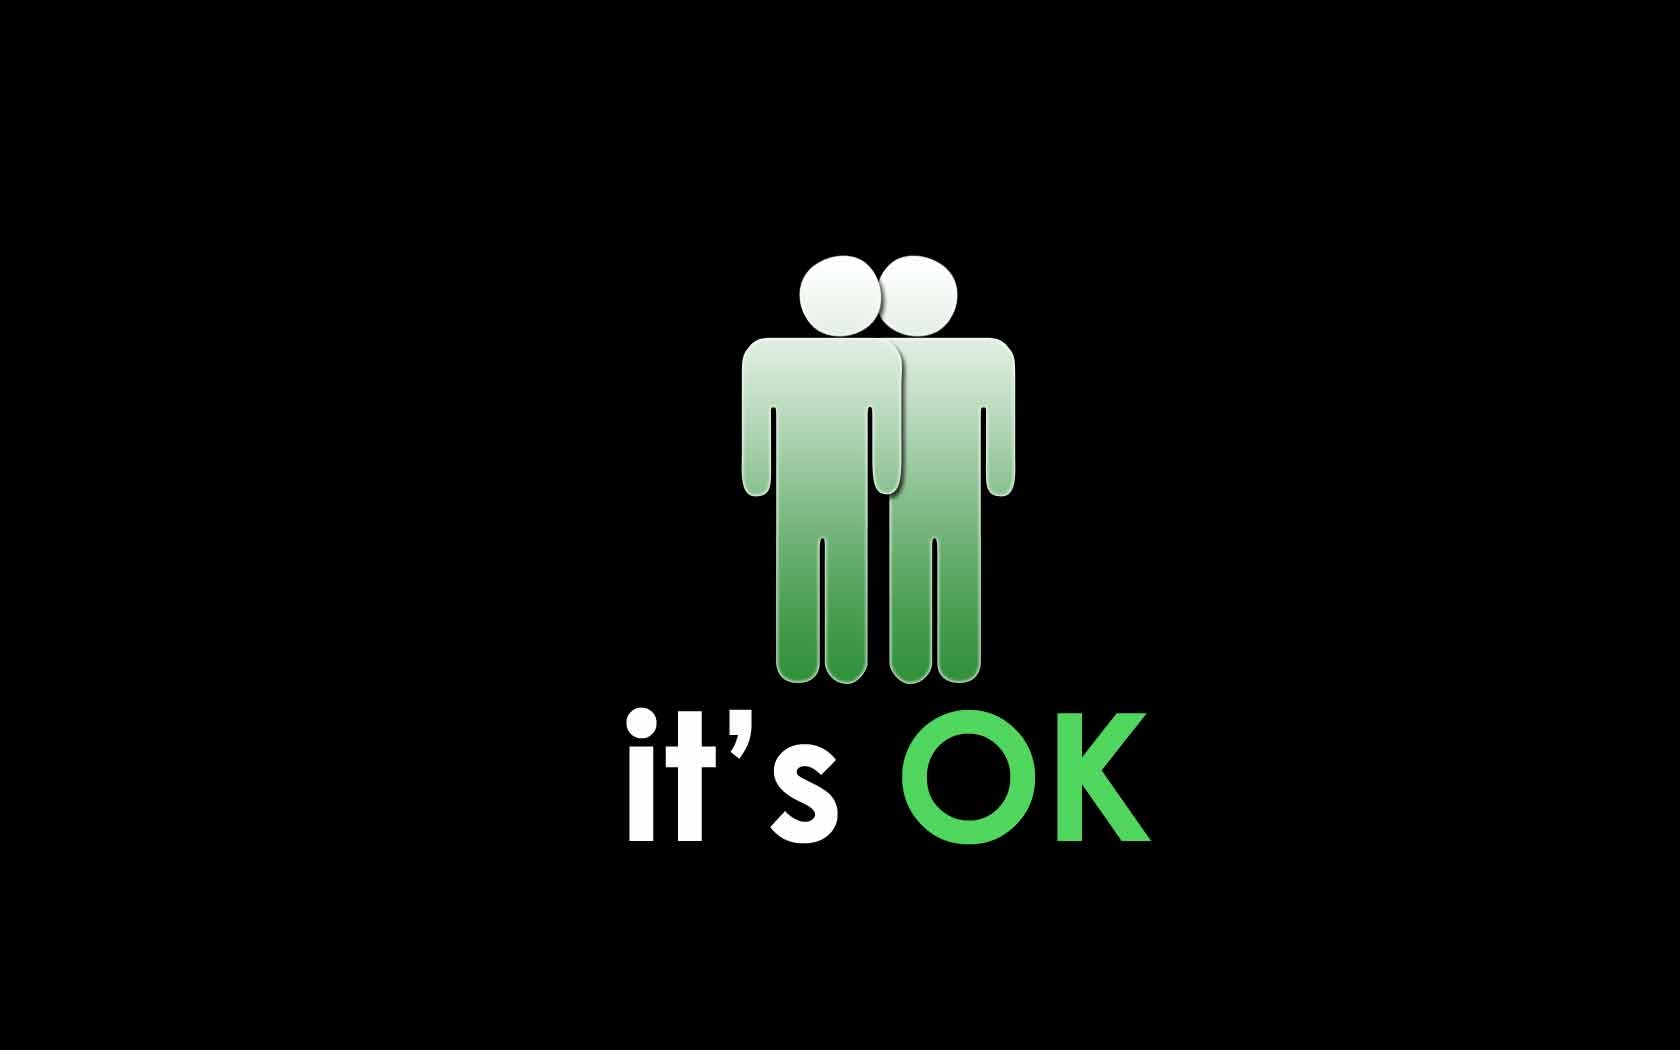 1680x1050 Its Ok wallpaper music and dance wallpapers 1680x1050